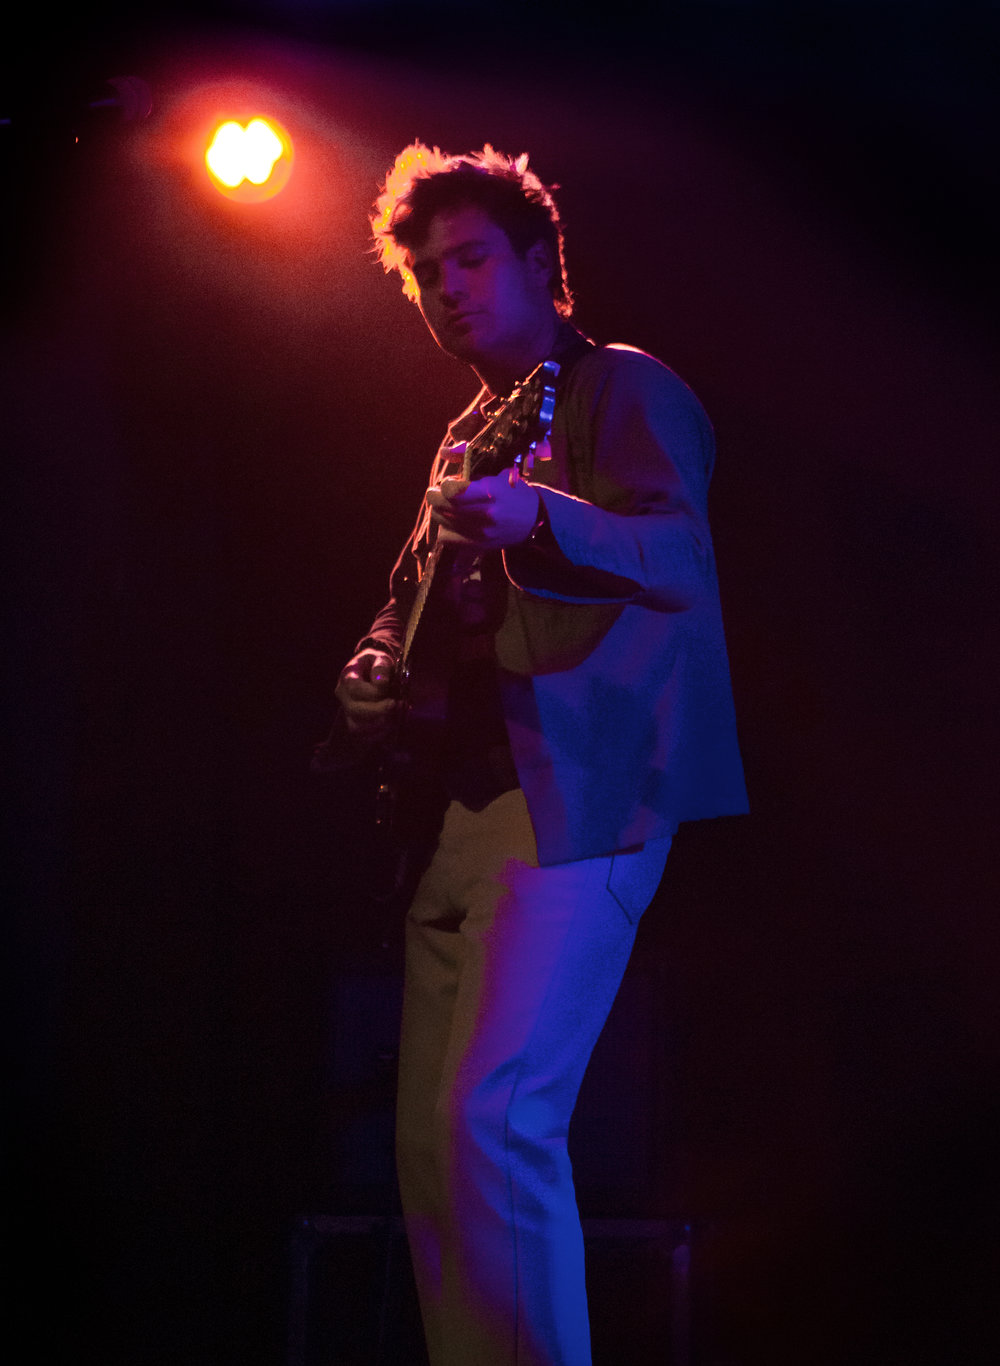 The Growlers played many songs from their new album, City Club, which has a sound that significantly departs from that of previous records.